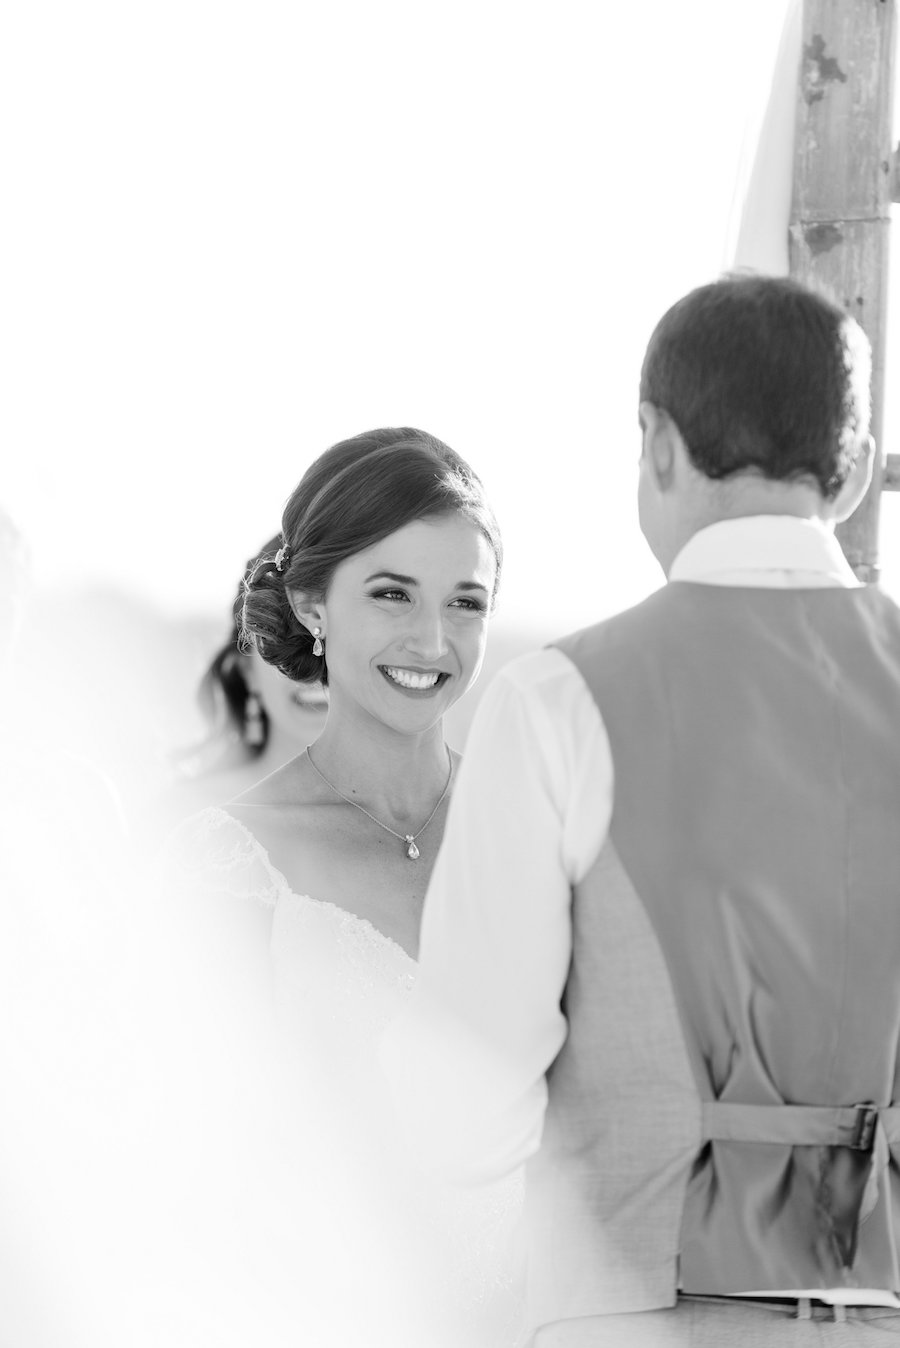 Bridal Wedding Day Portrait during Wedding Ceremony Vows   Clearwater Wedding Photographer Caroline and Evan Photography